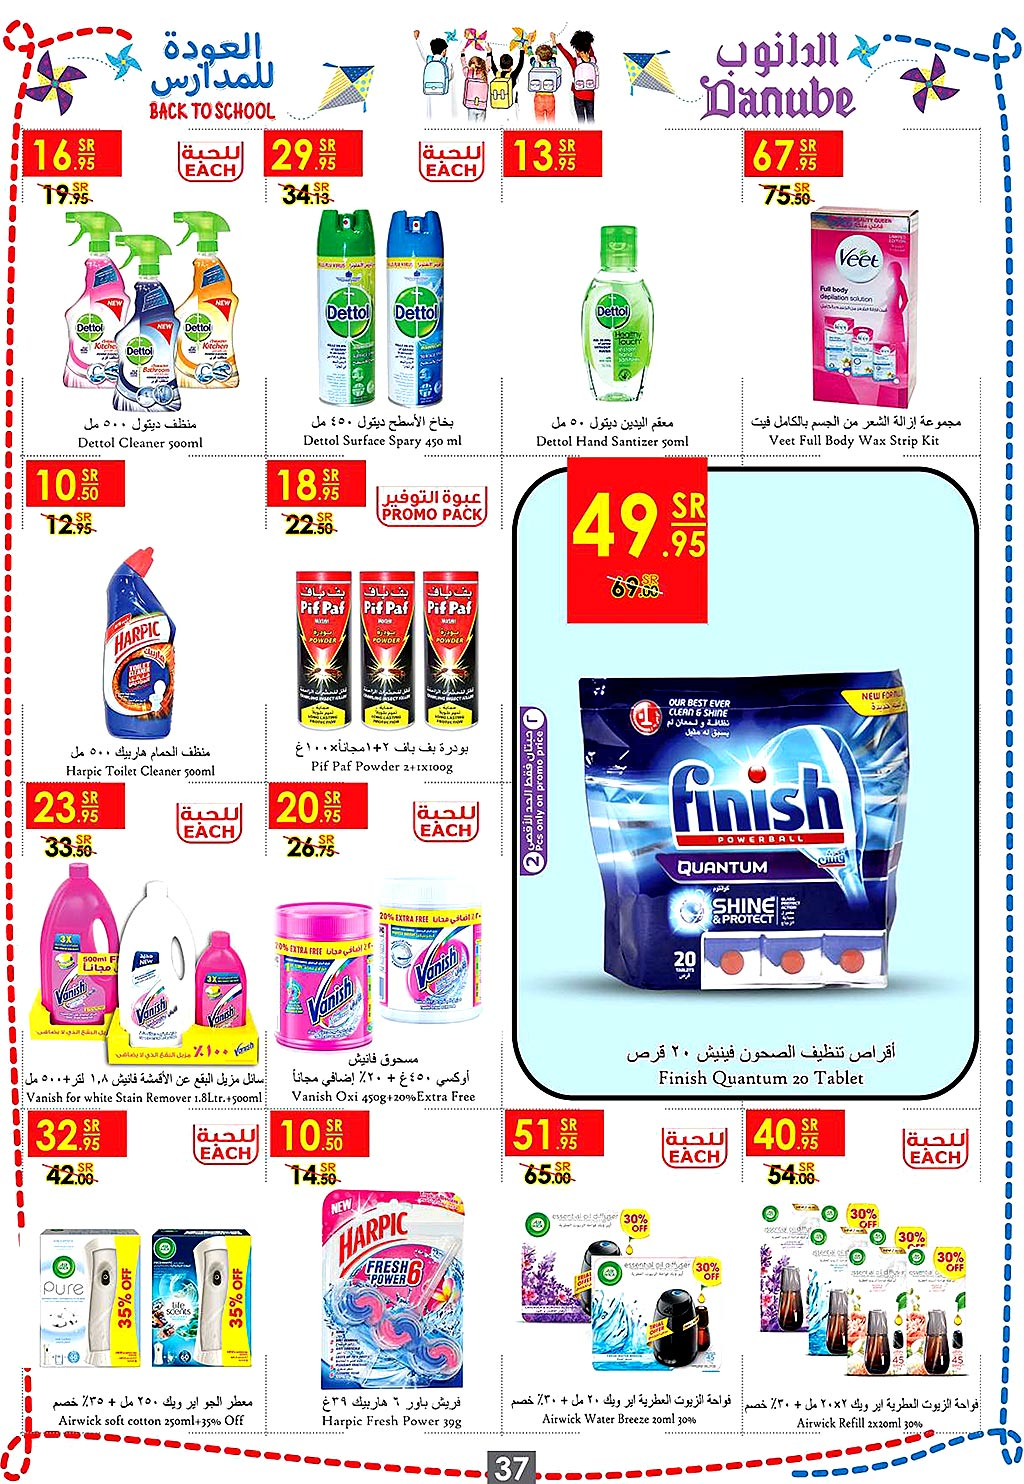 danube offers from 7aug to 20aug 2019 page number 36 عروض الدانوب من 7 أغسطس حتى 20 أغسطس 2019 صفحة رقم 36